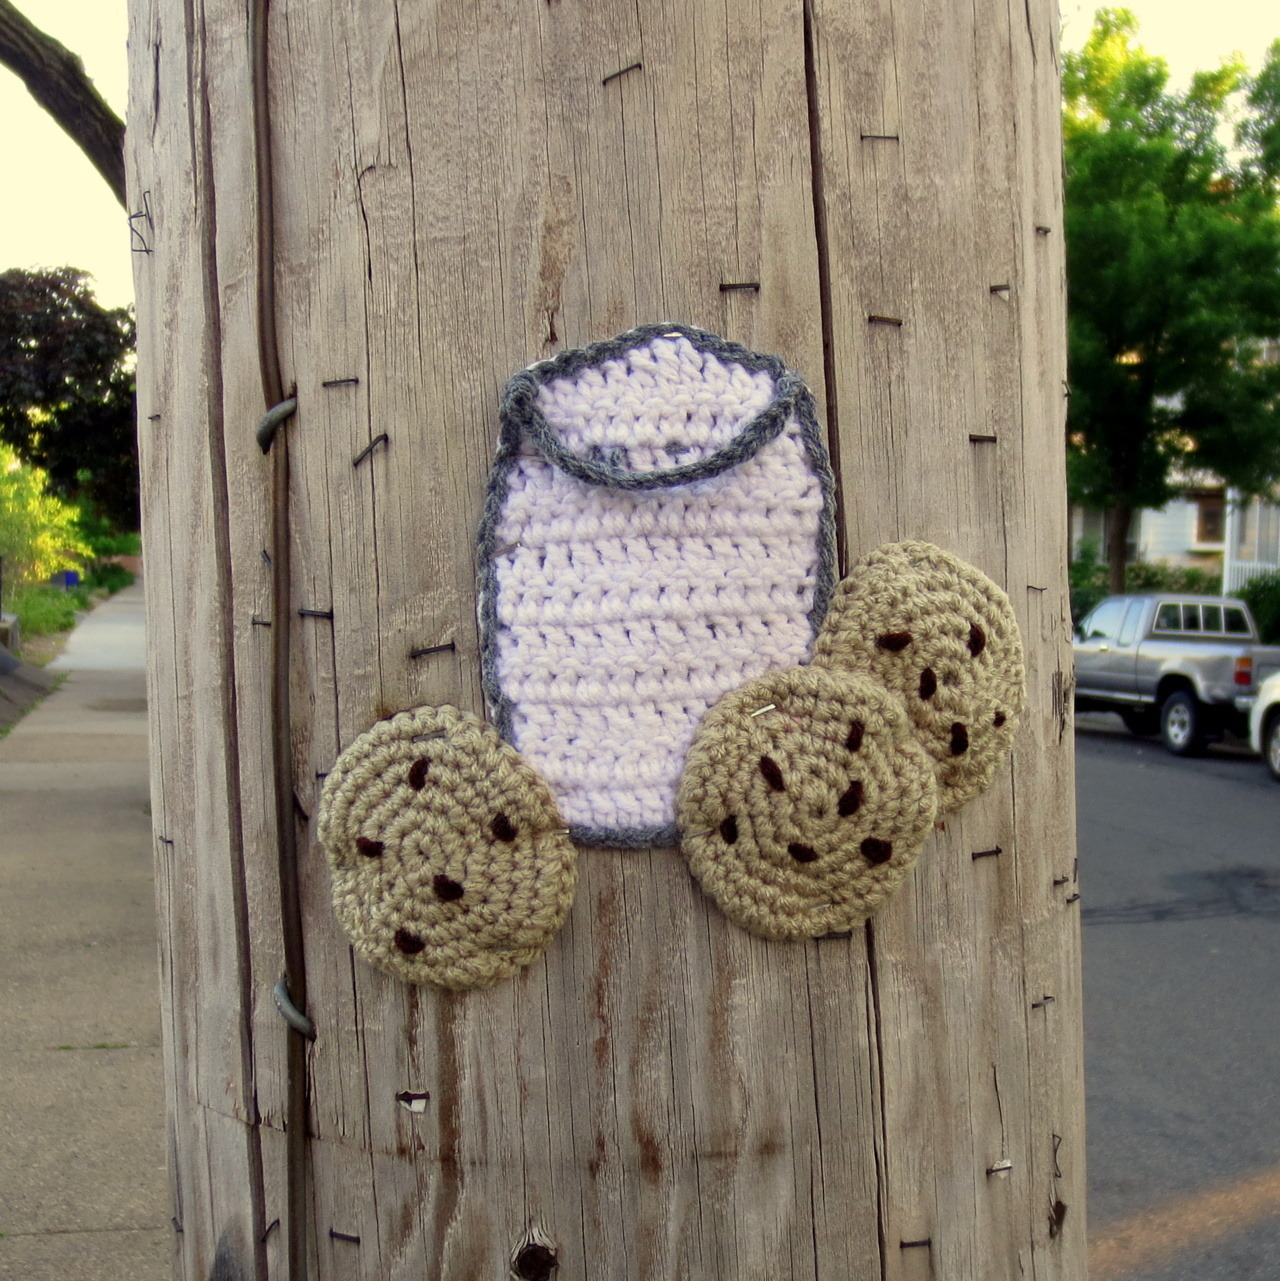 Crocheted graffiti. So much better than any other kind.